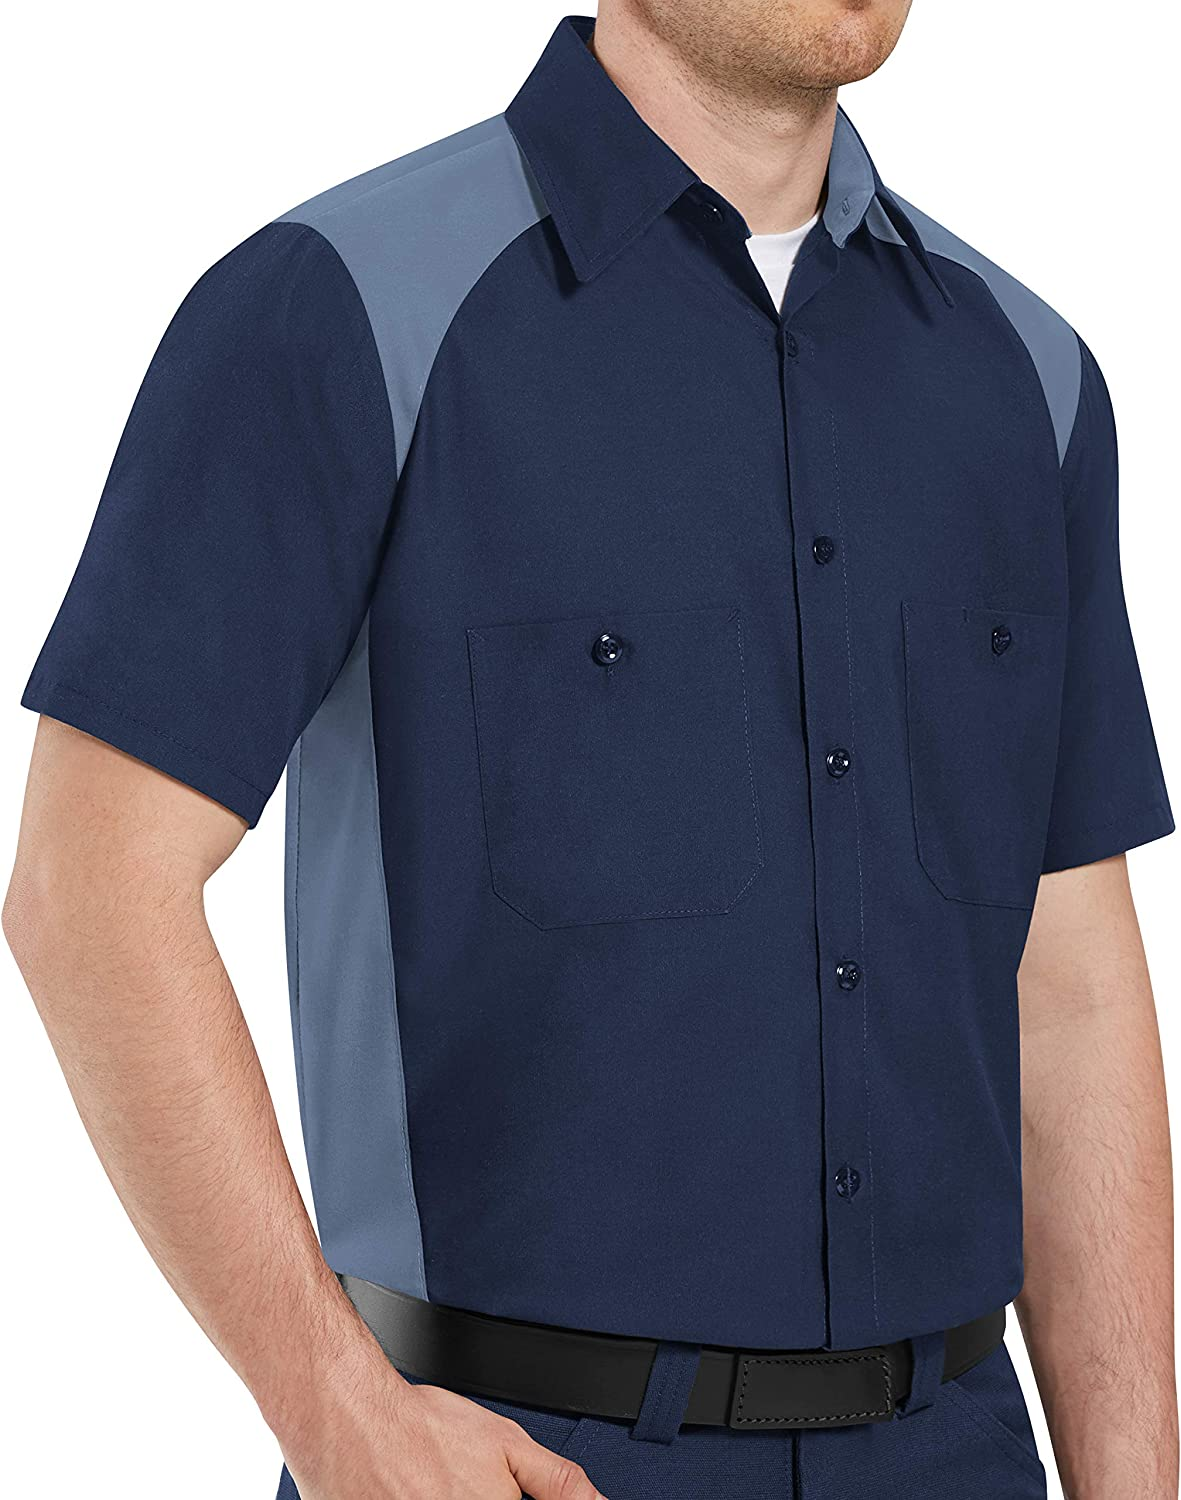 Red Kap Men's Tall Size Max 49% OFF Motorsports Short Shirt low-pricing Sleeve